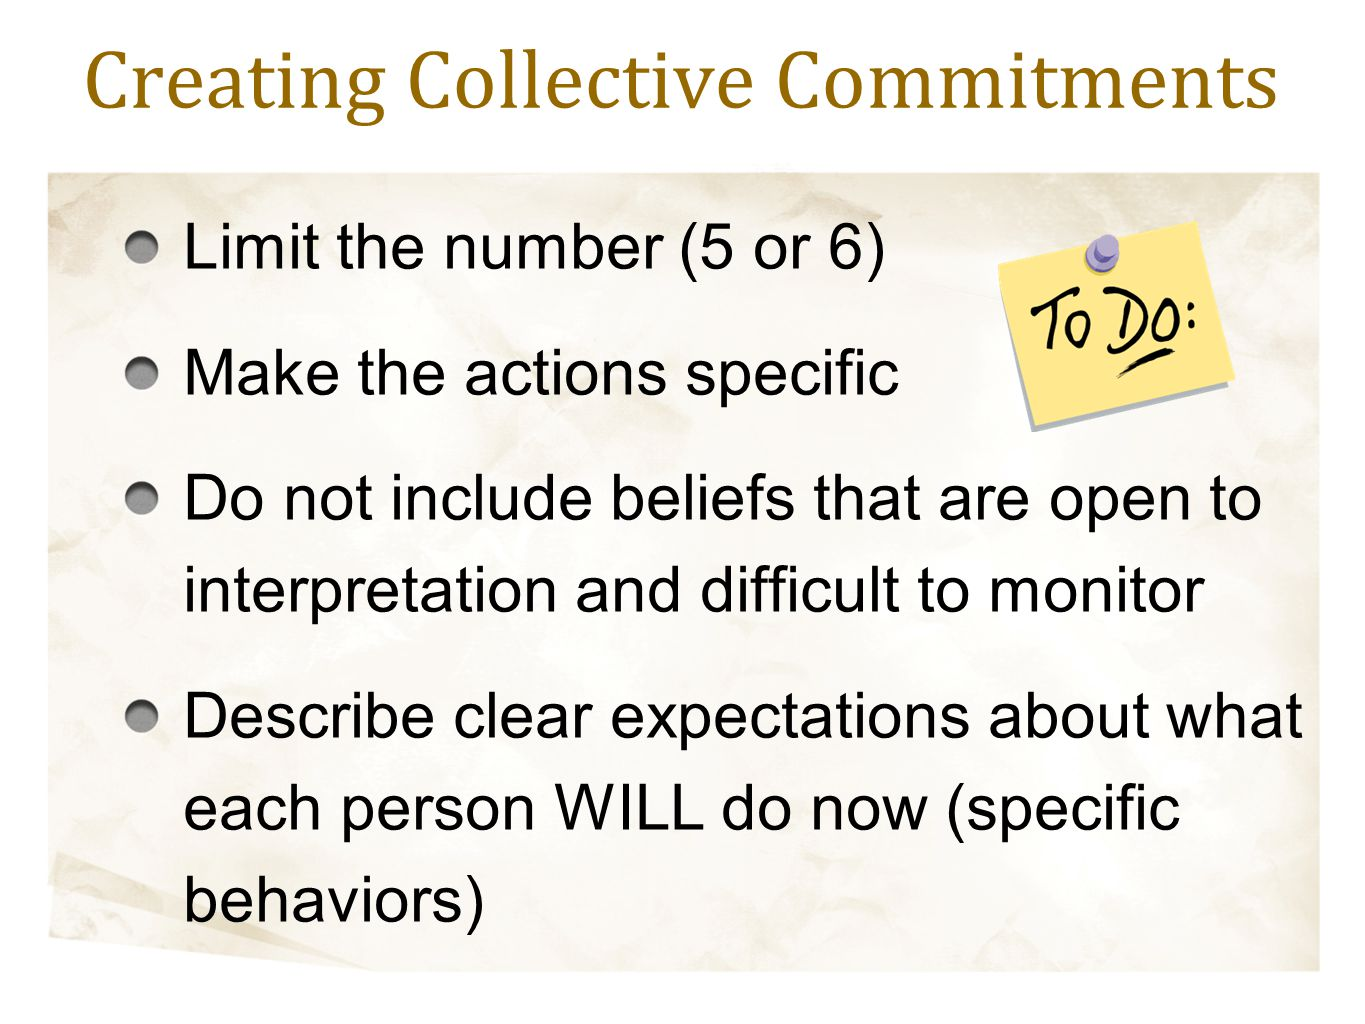 Limit the number (5 or 6) Make the actions specific Do not include beliefs that are open to interpretation and difficult to monitor Describe clear exp